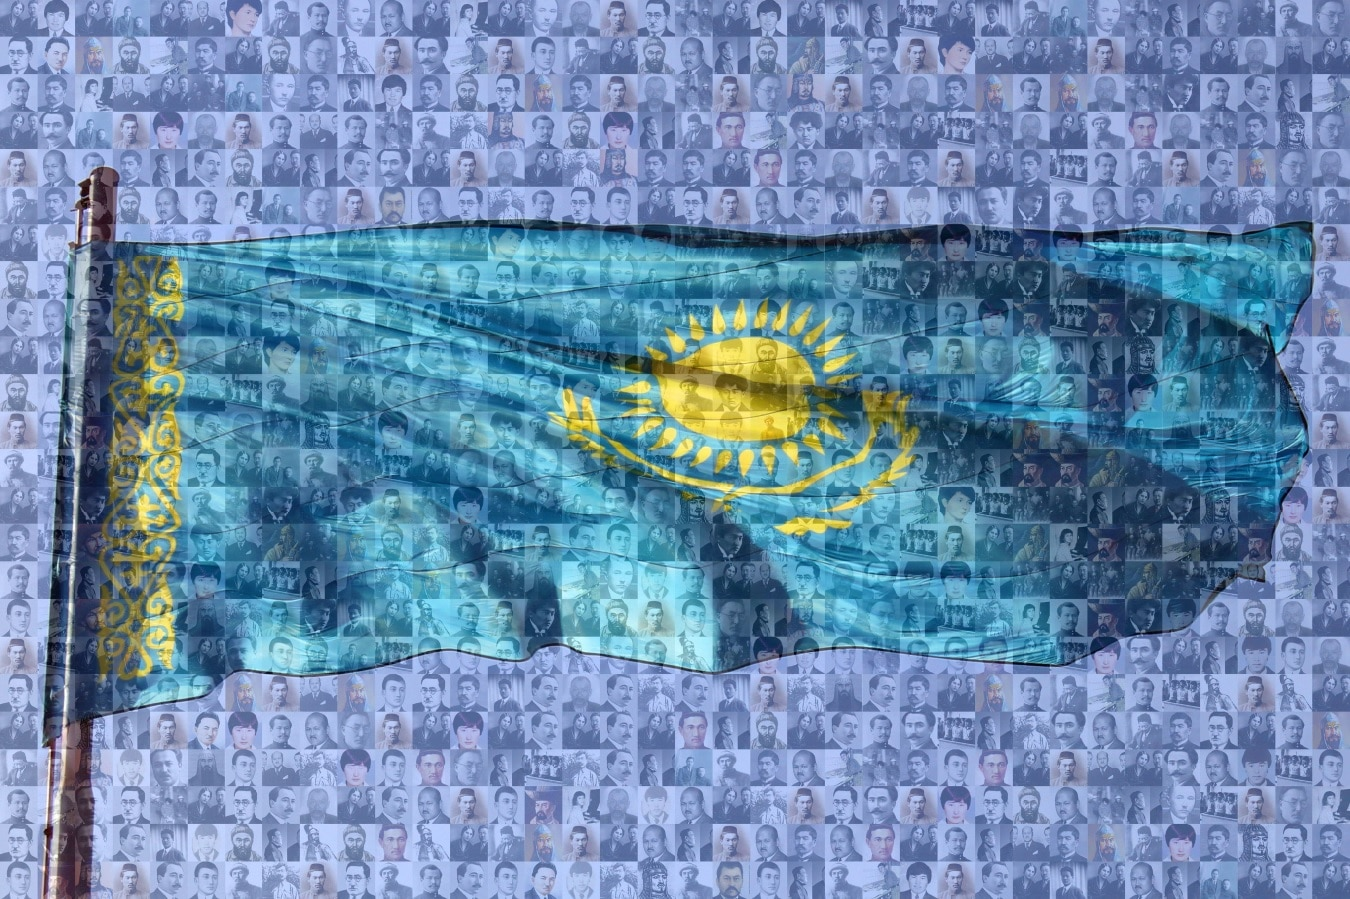 Info Shymkent - 16th of December - Independence Day of Kazakhstan - Heros of Kazakhstan's Independence